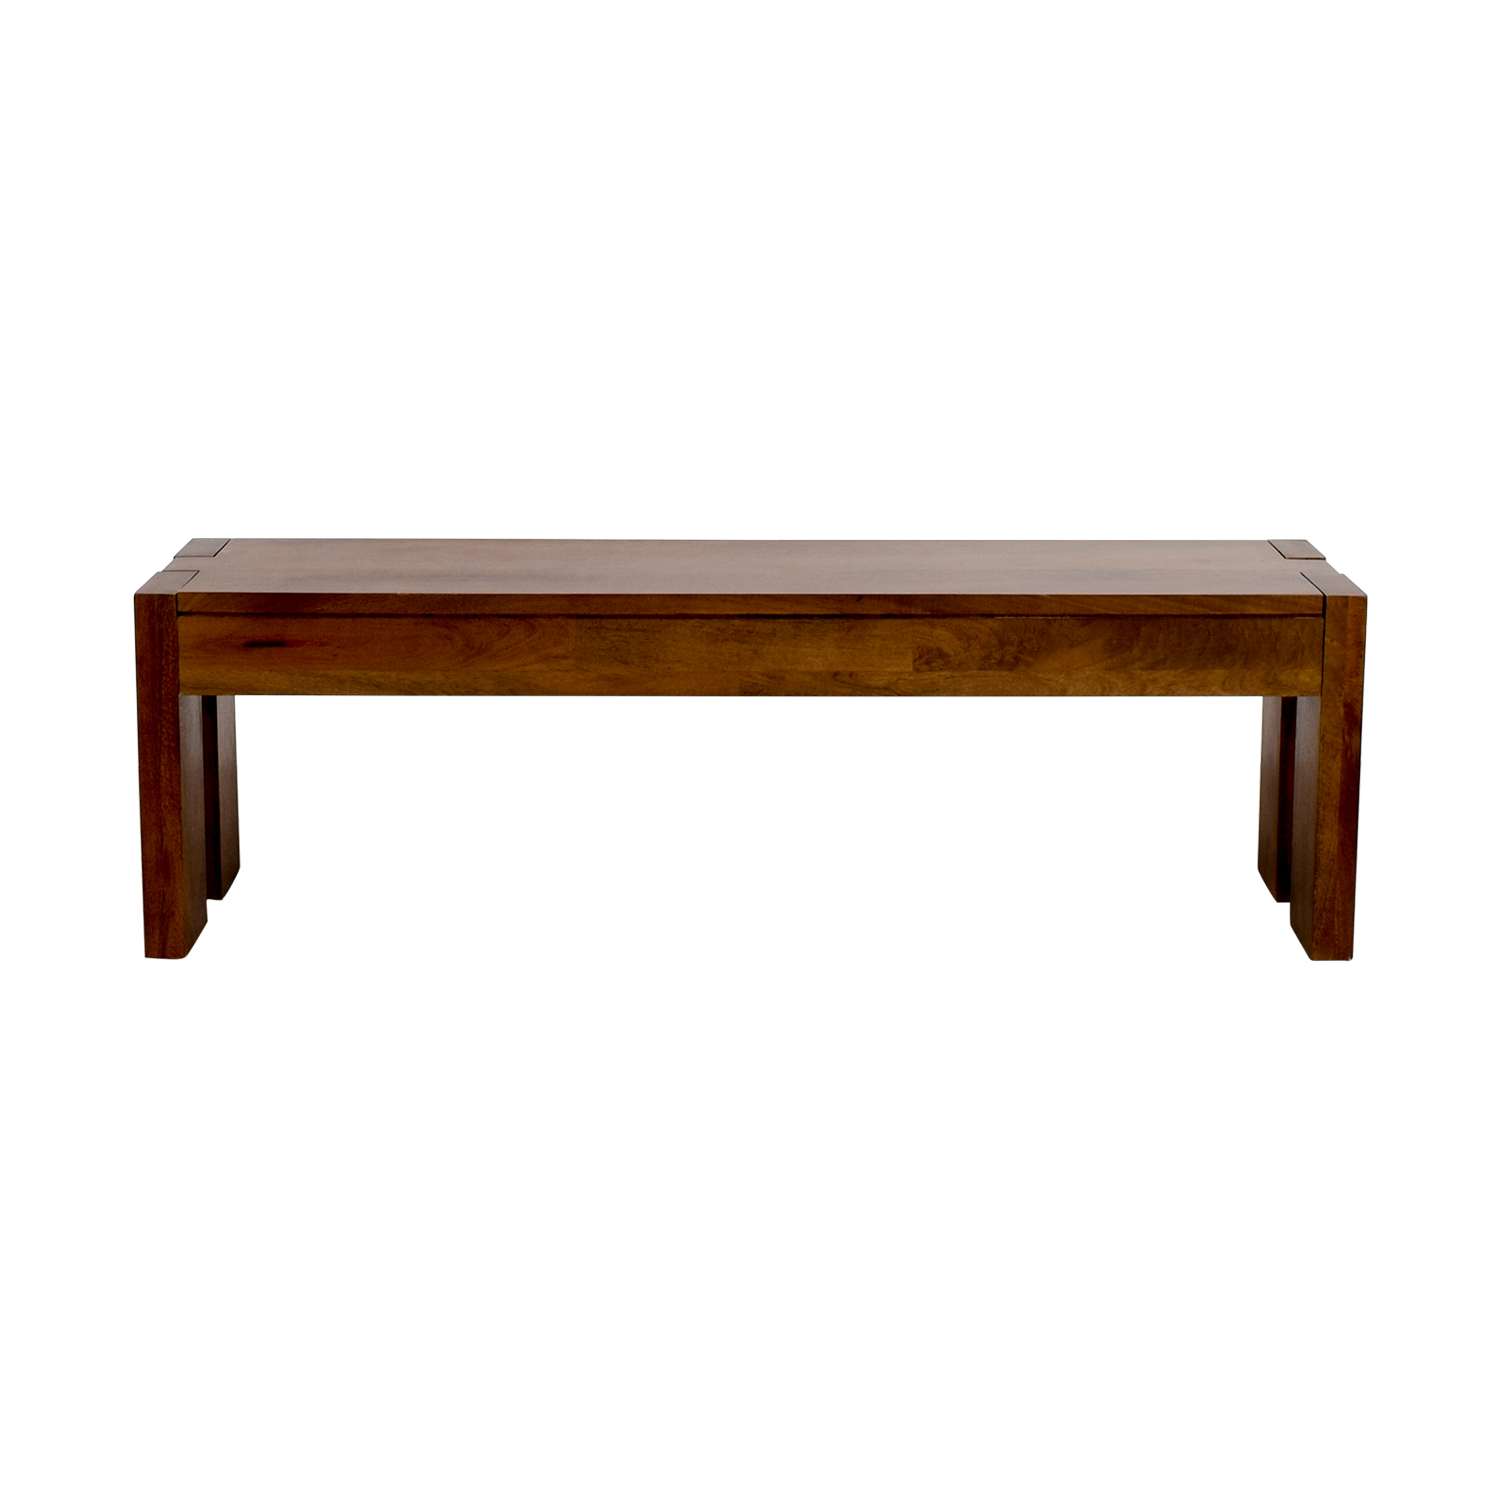 West Elm West Elm Bench coupon